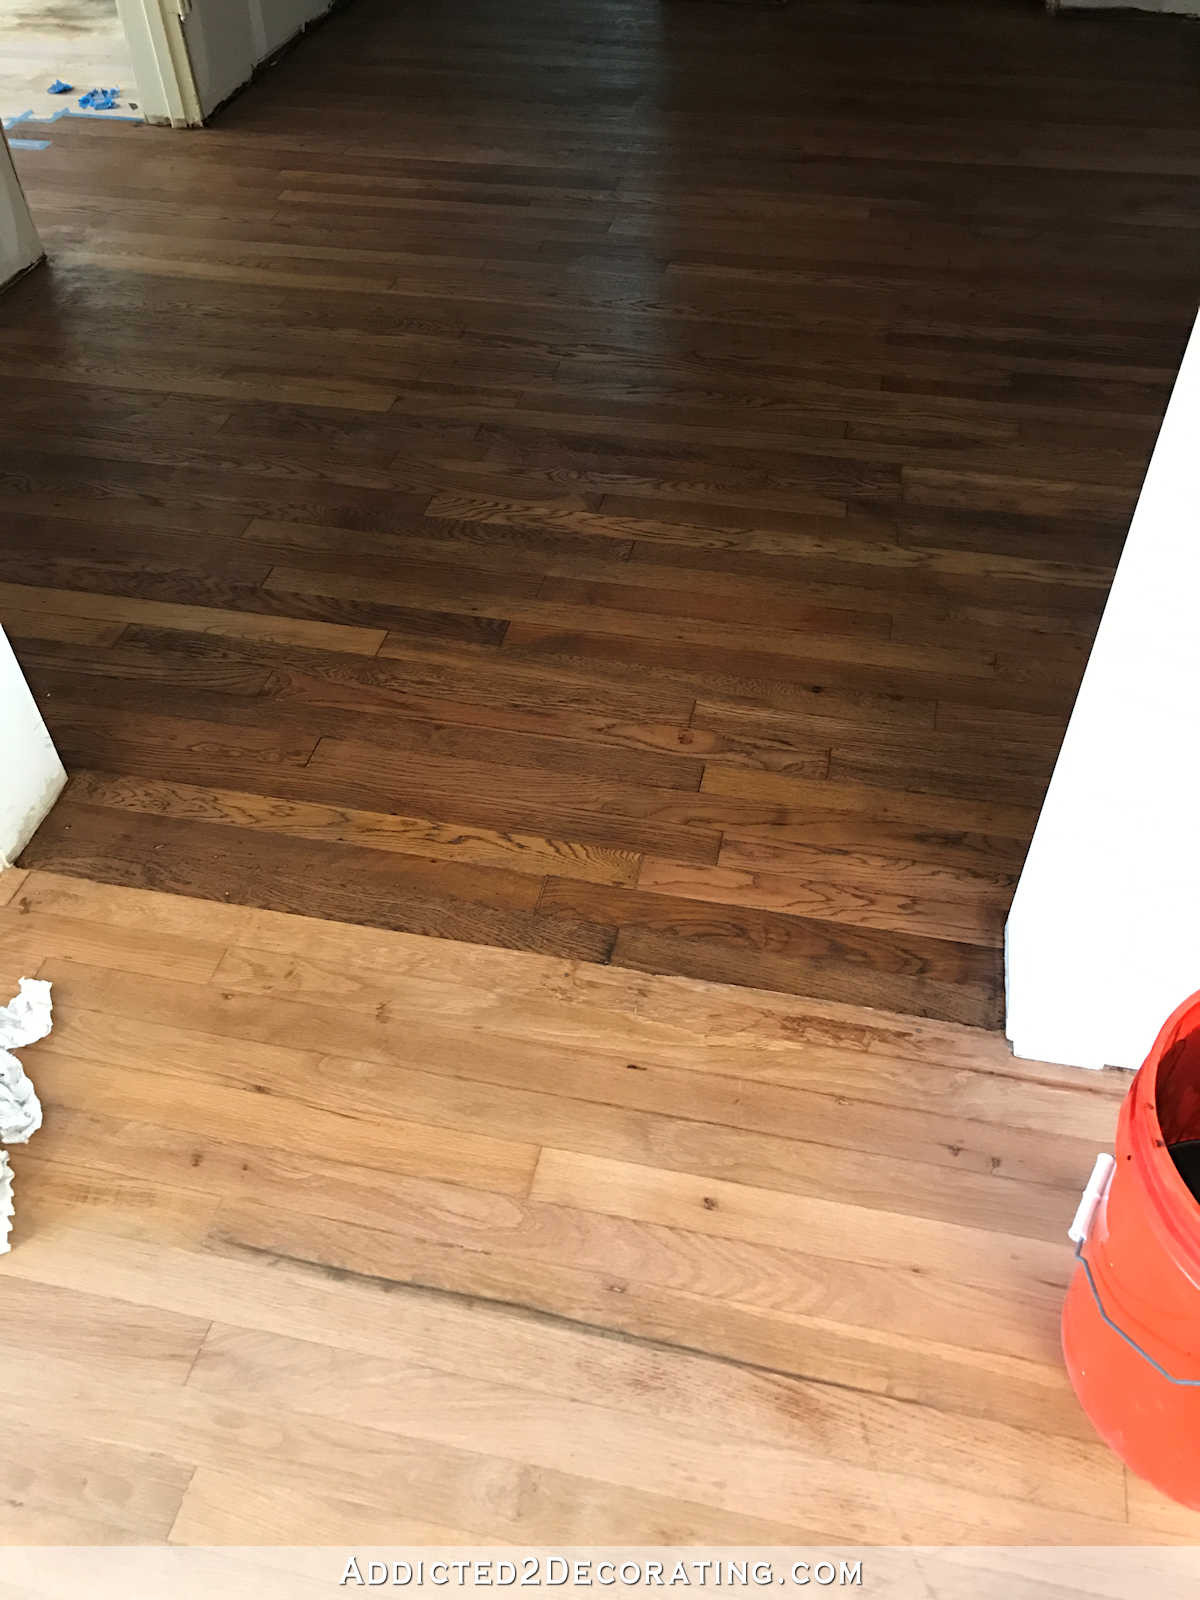 can you mix hardwood floor colors of adventures in staining my red oak hardwood floors products process intended for staining red oak hardwood floors 2 tape off one section at a time for